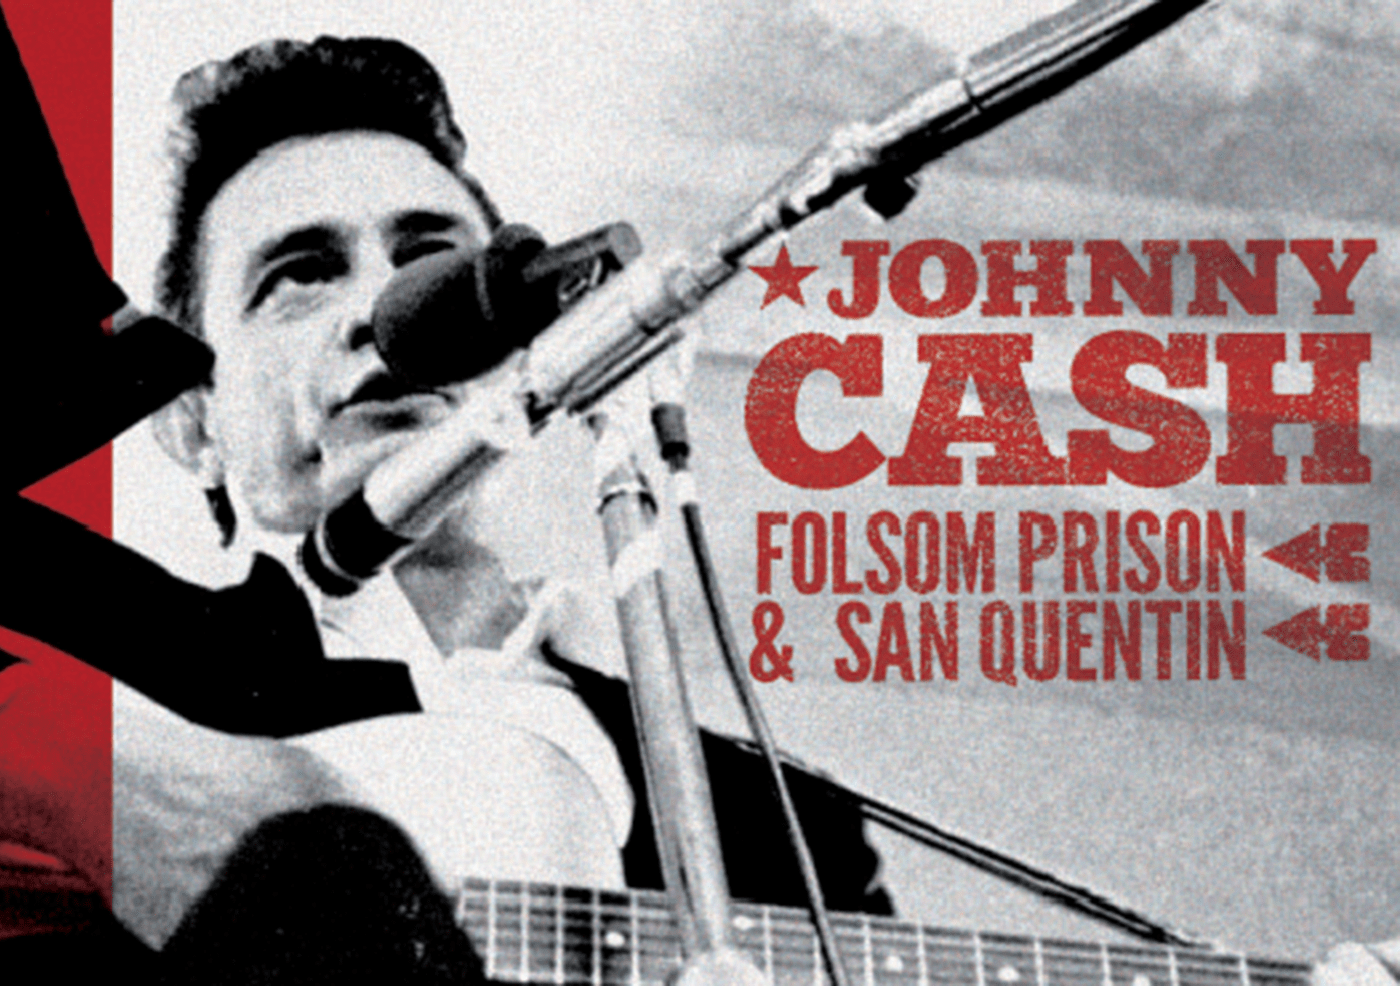 Johnny Cash at Folsom Prison & San Quentin - boxset